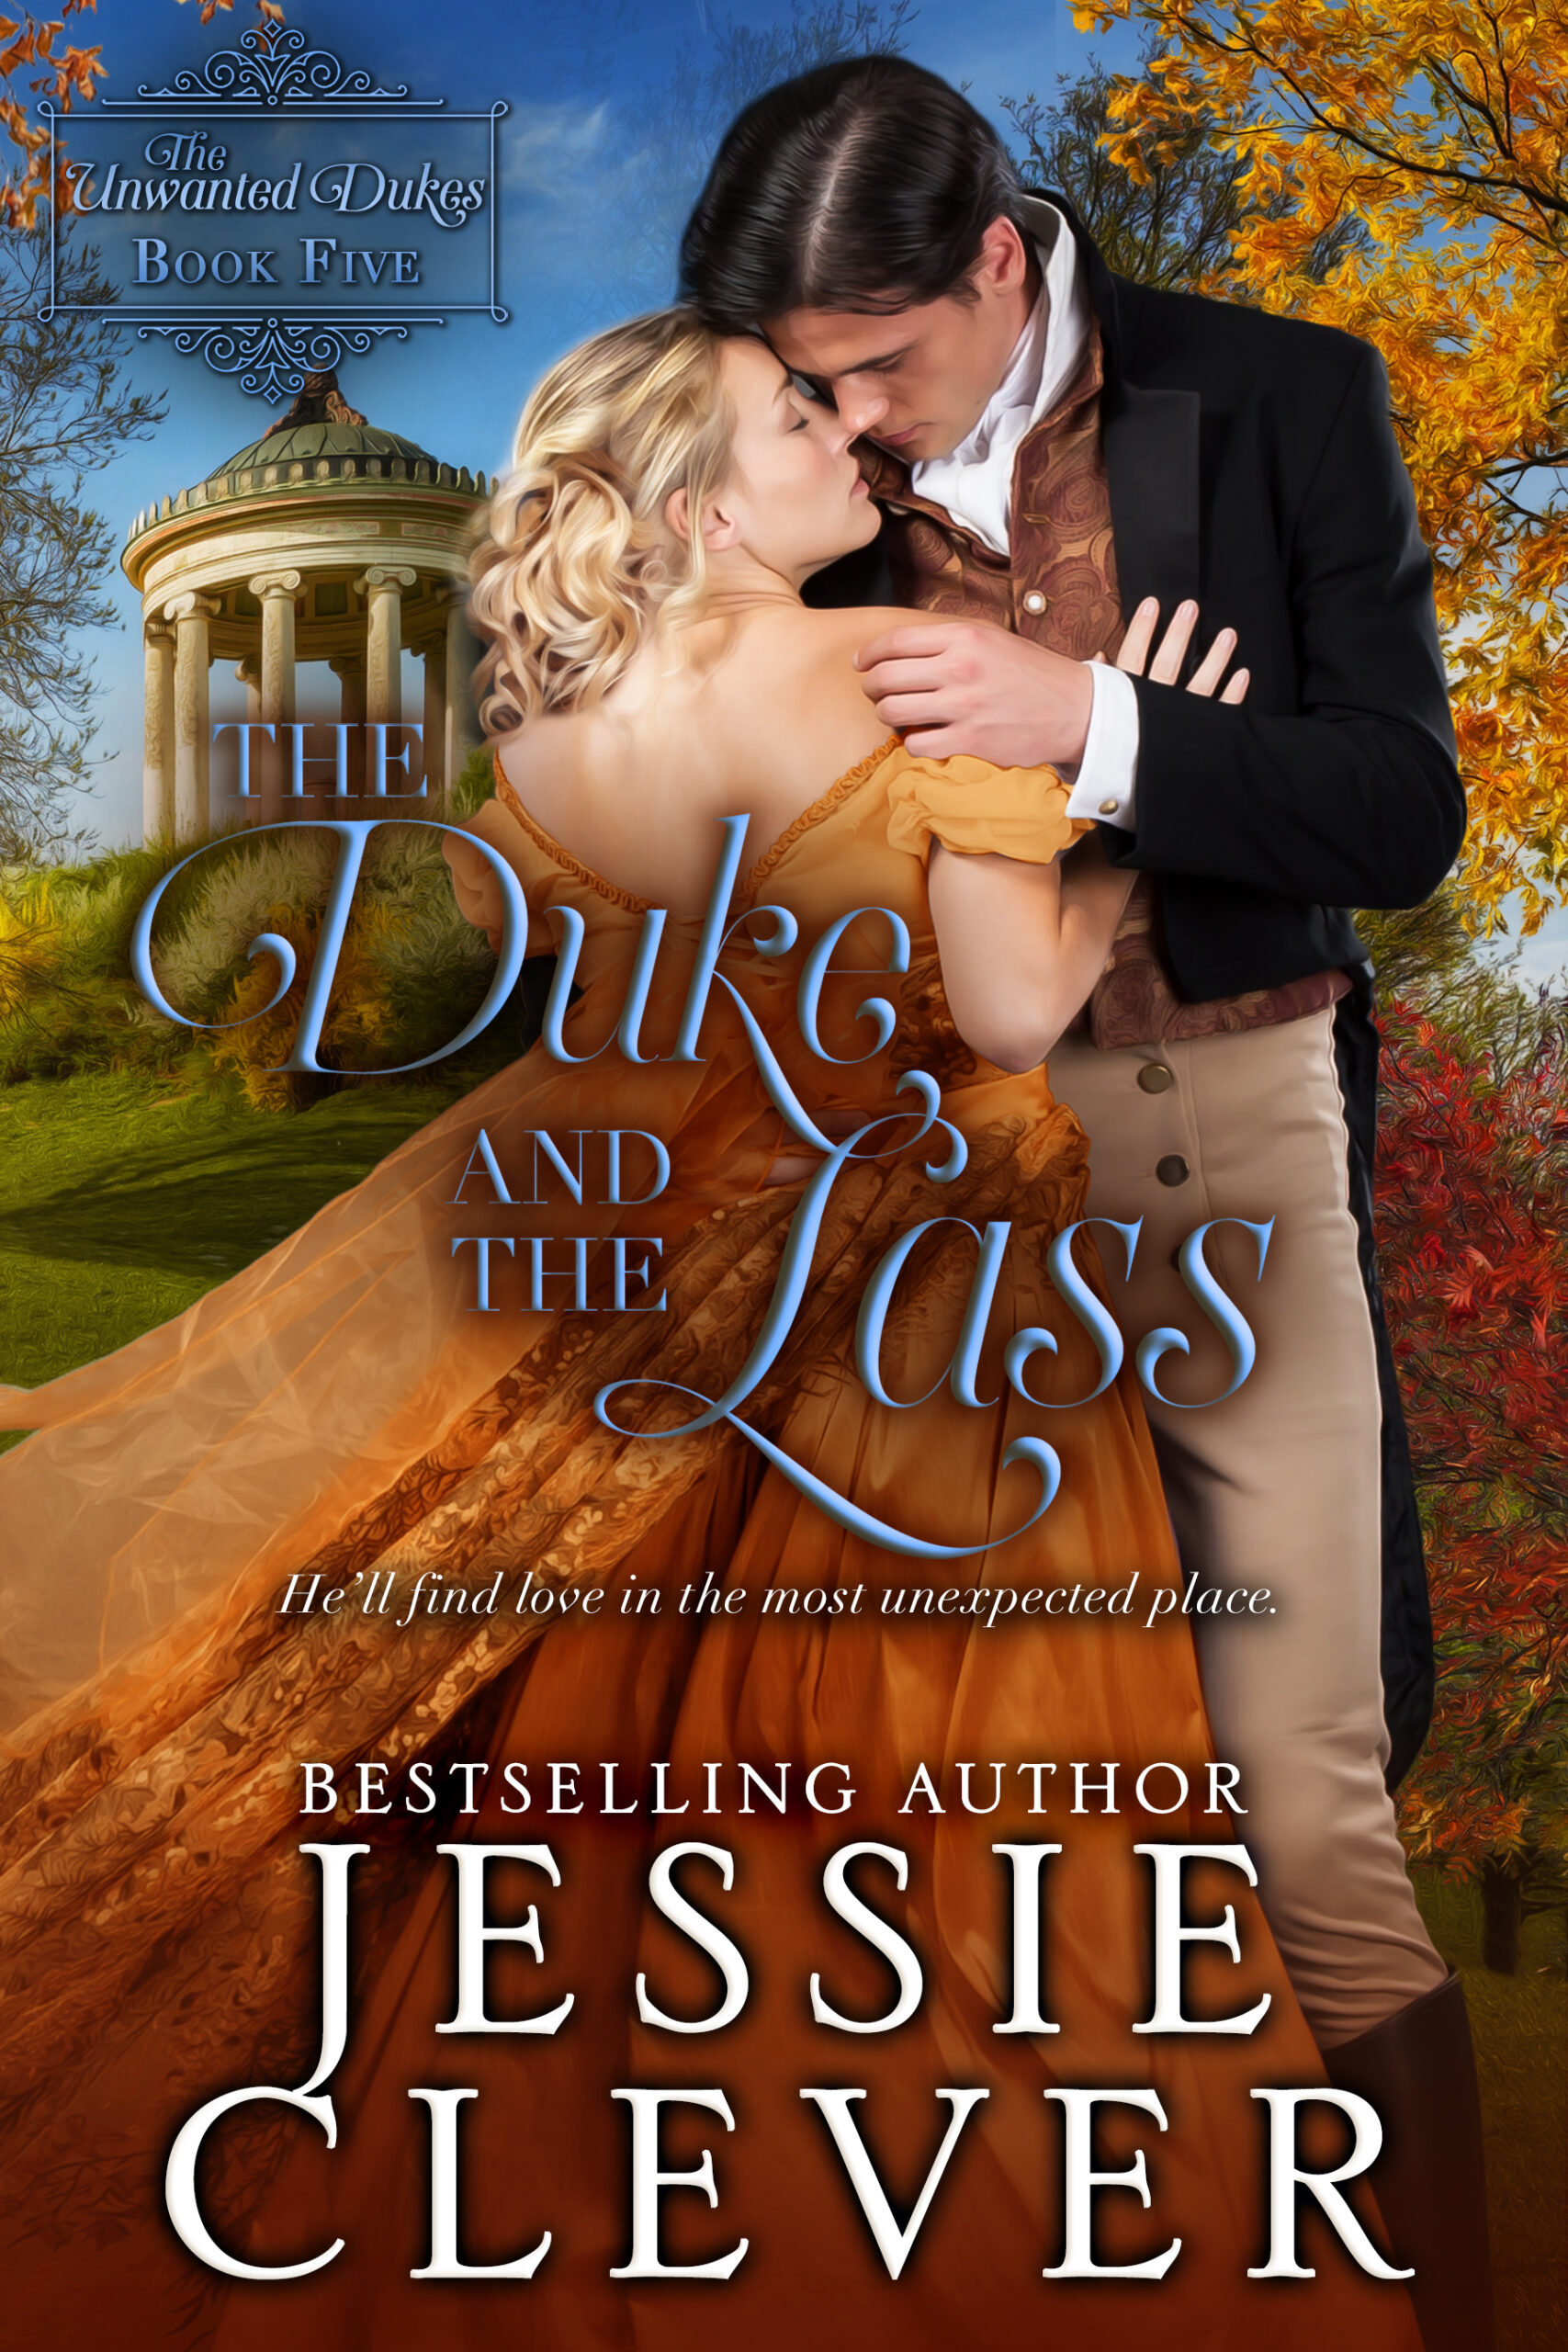 Now Available for Pre-Order: The Duke and the Lass